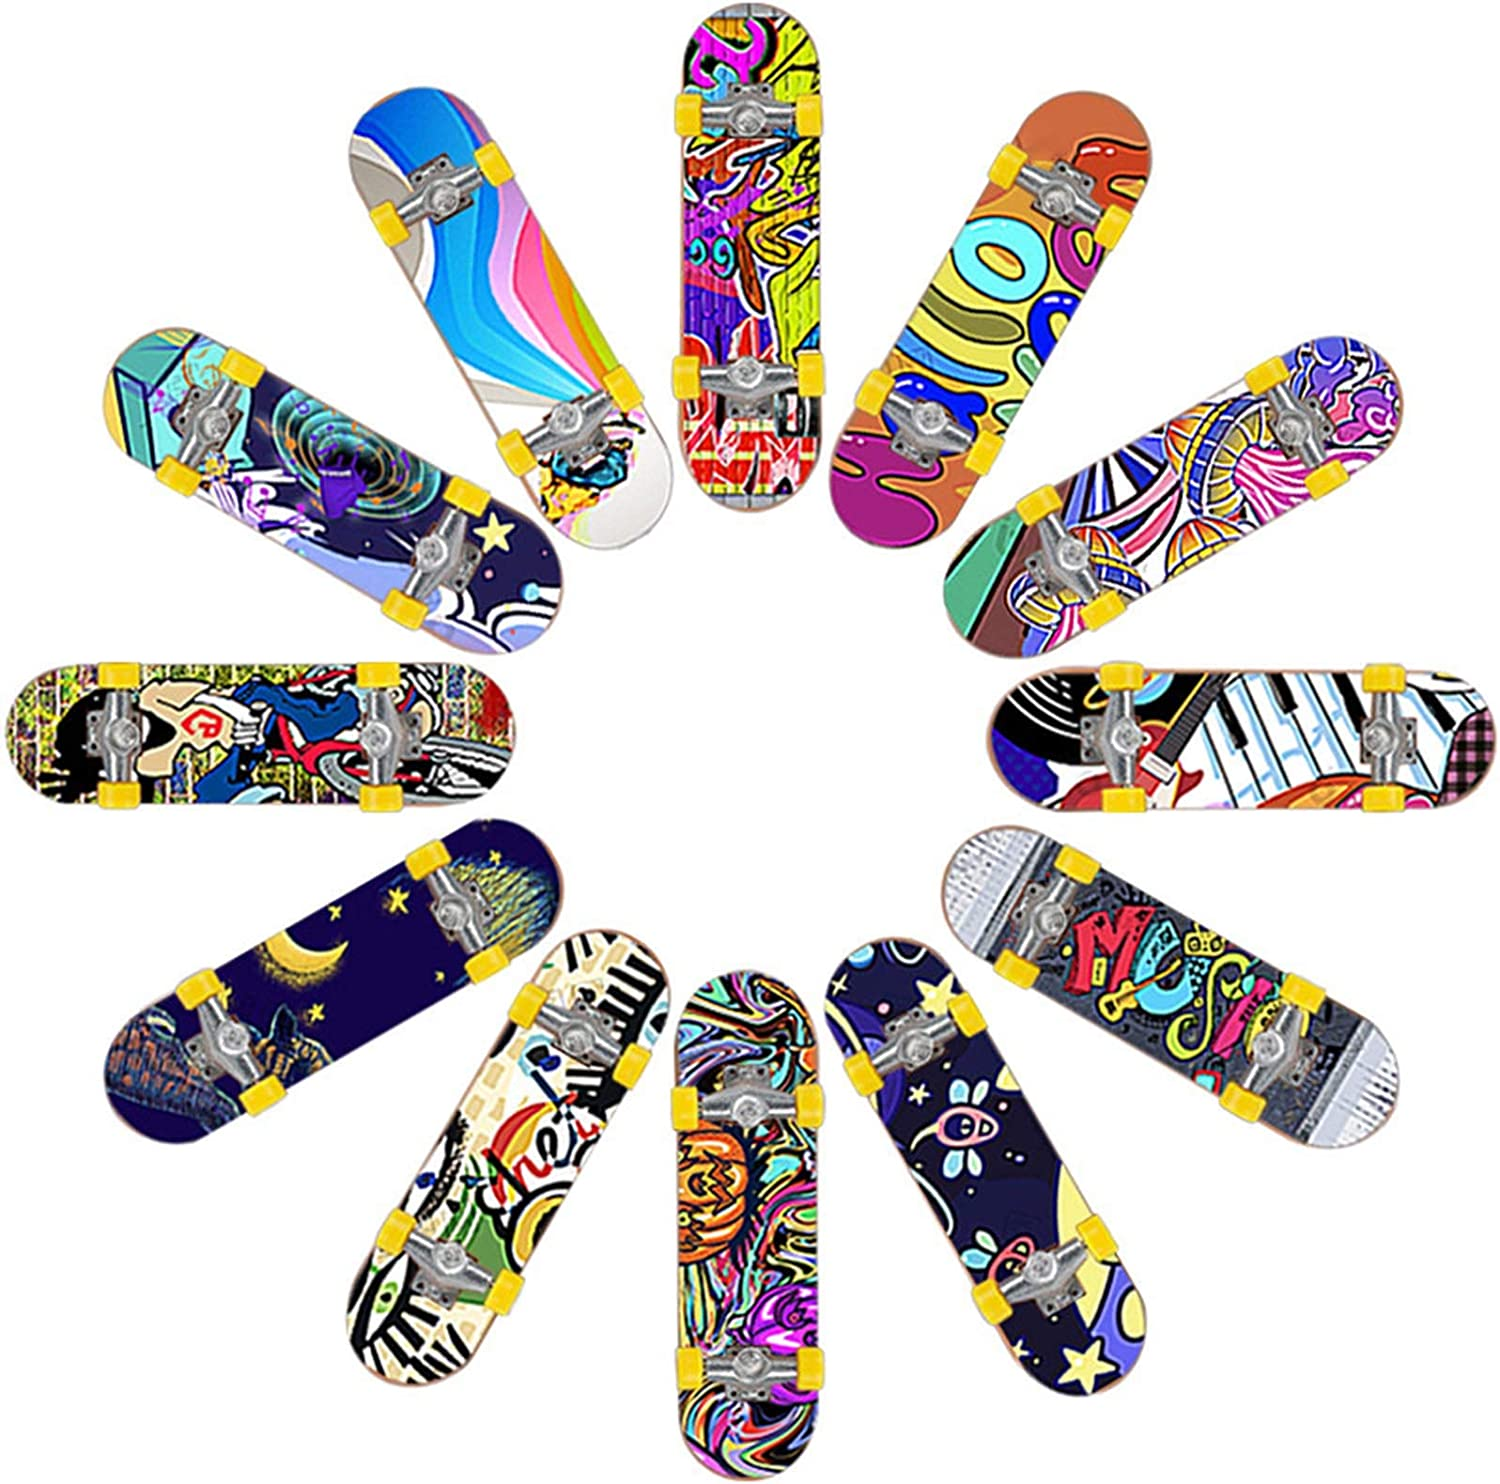 Mini Finger Skateboard Finger Bicycle Swing Boards and Multiple Scenes Ramp Set with 9 Pcs Replaceable Accessories Gifts Party Favors for Kids Children Fingertoys Skate Park Kit